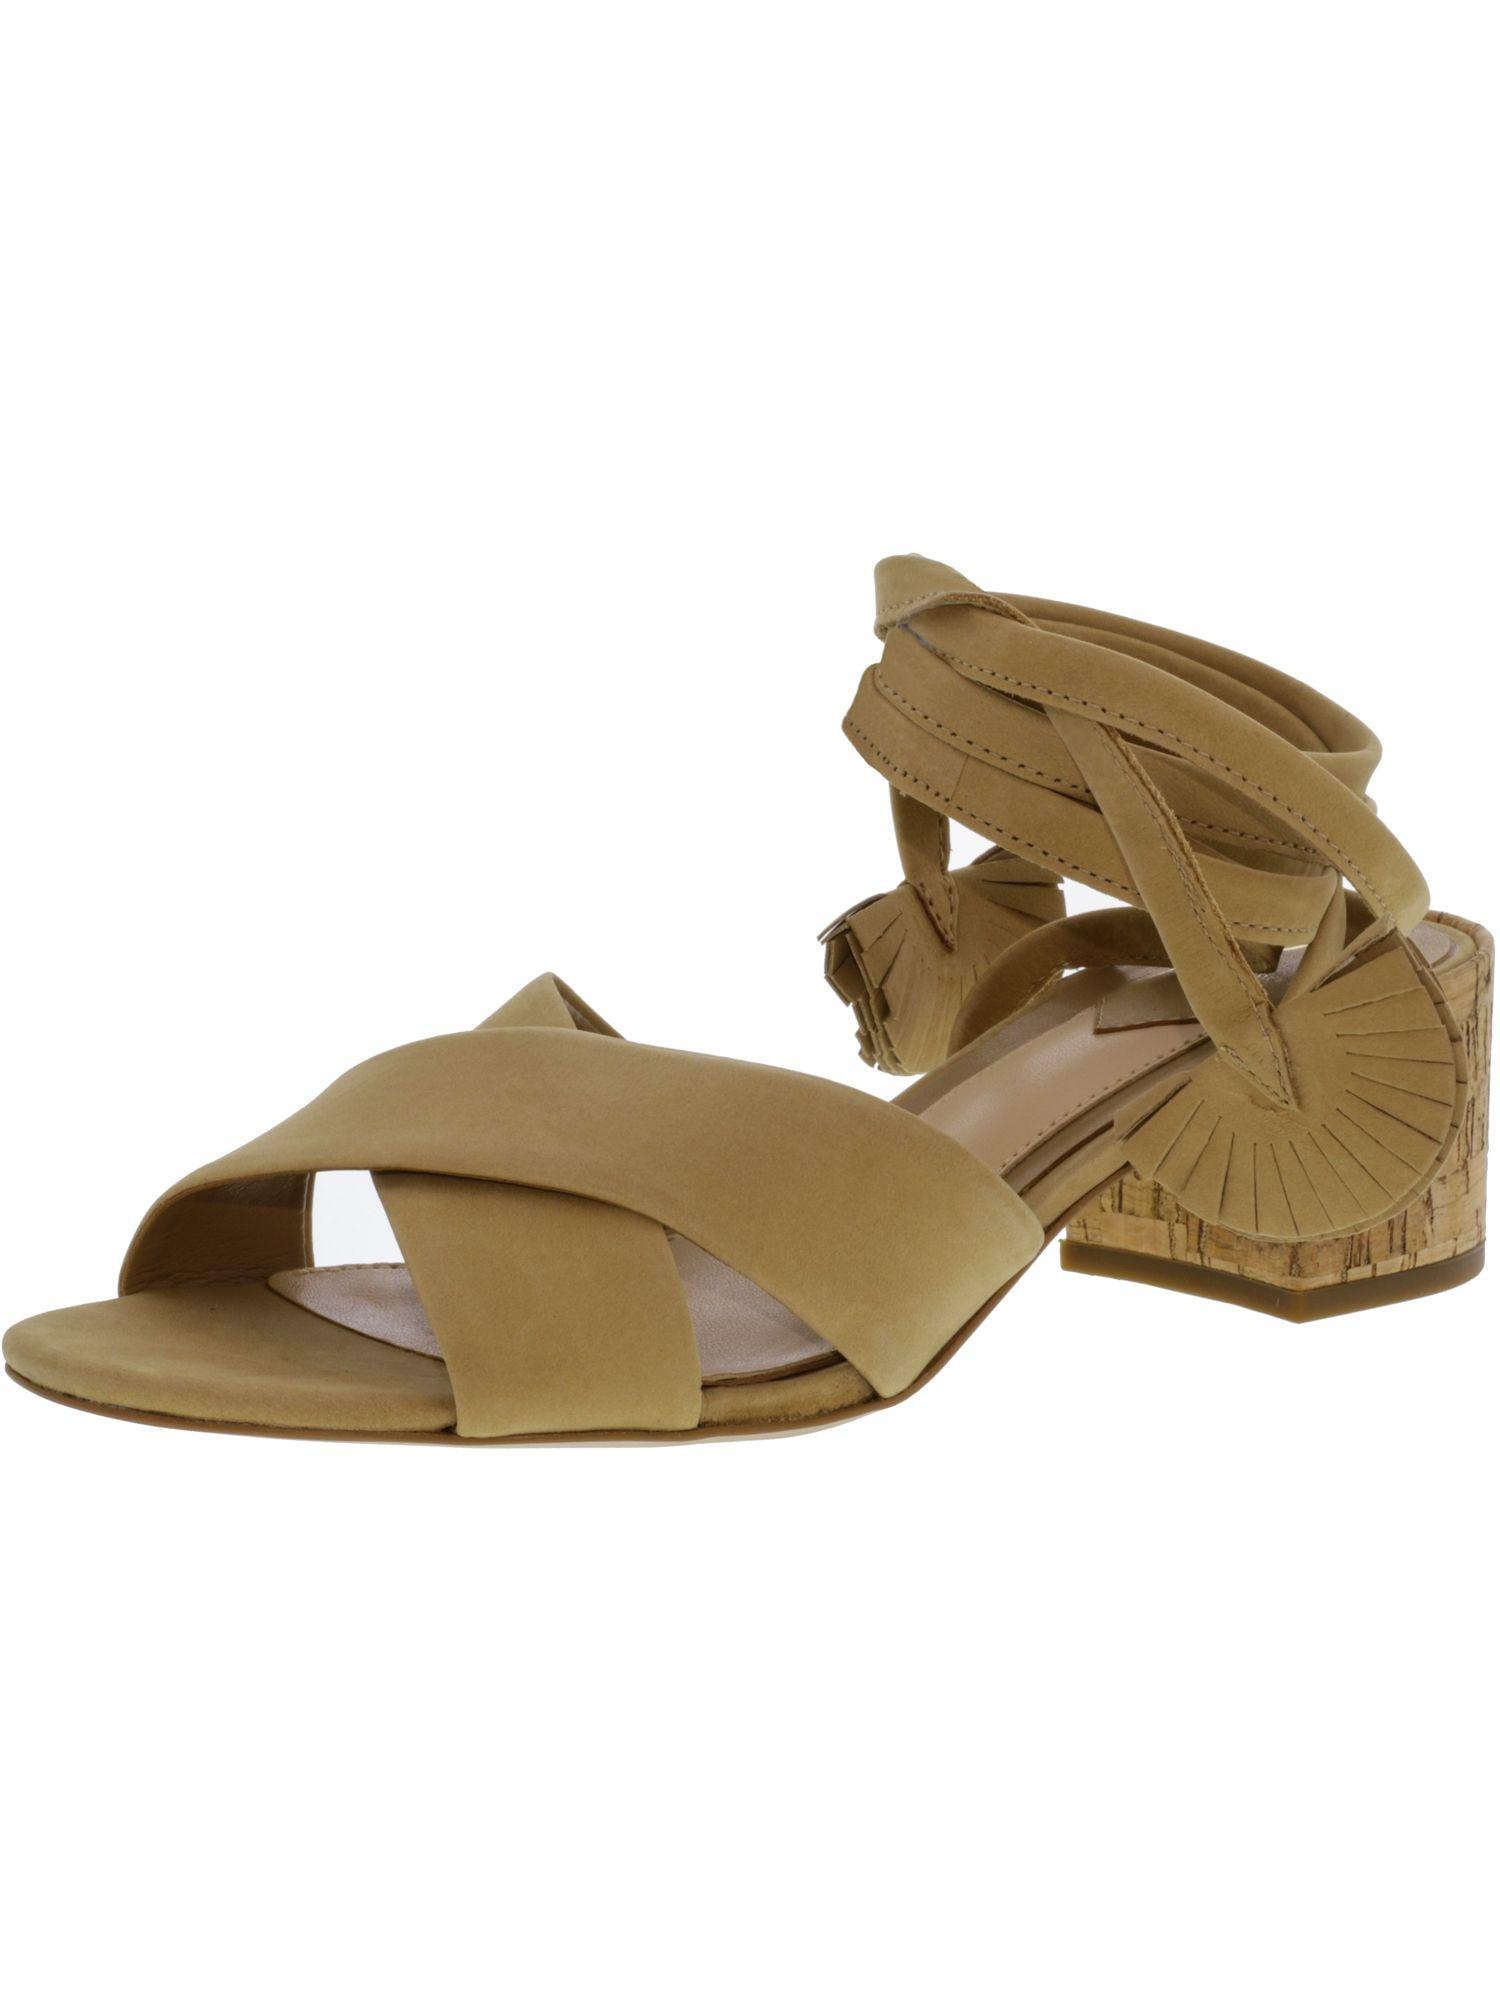 cbf487bcecf Lyst - Brian Atwood Women s B-astor Nubuck Leather Sandal in Brown